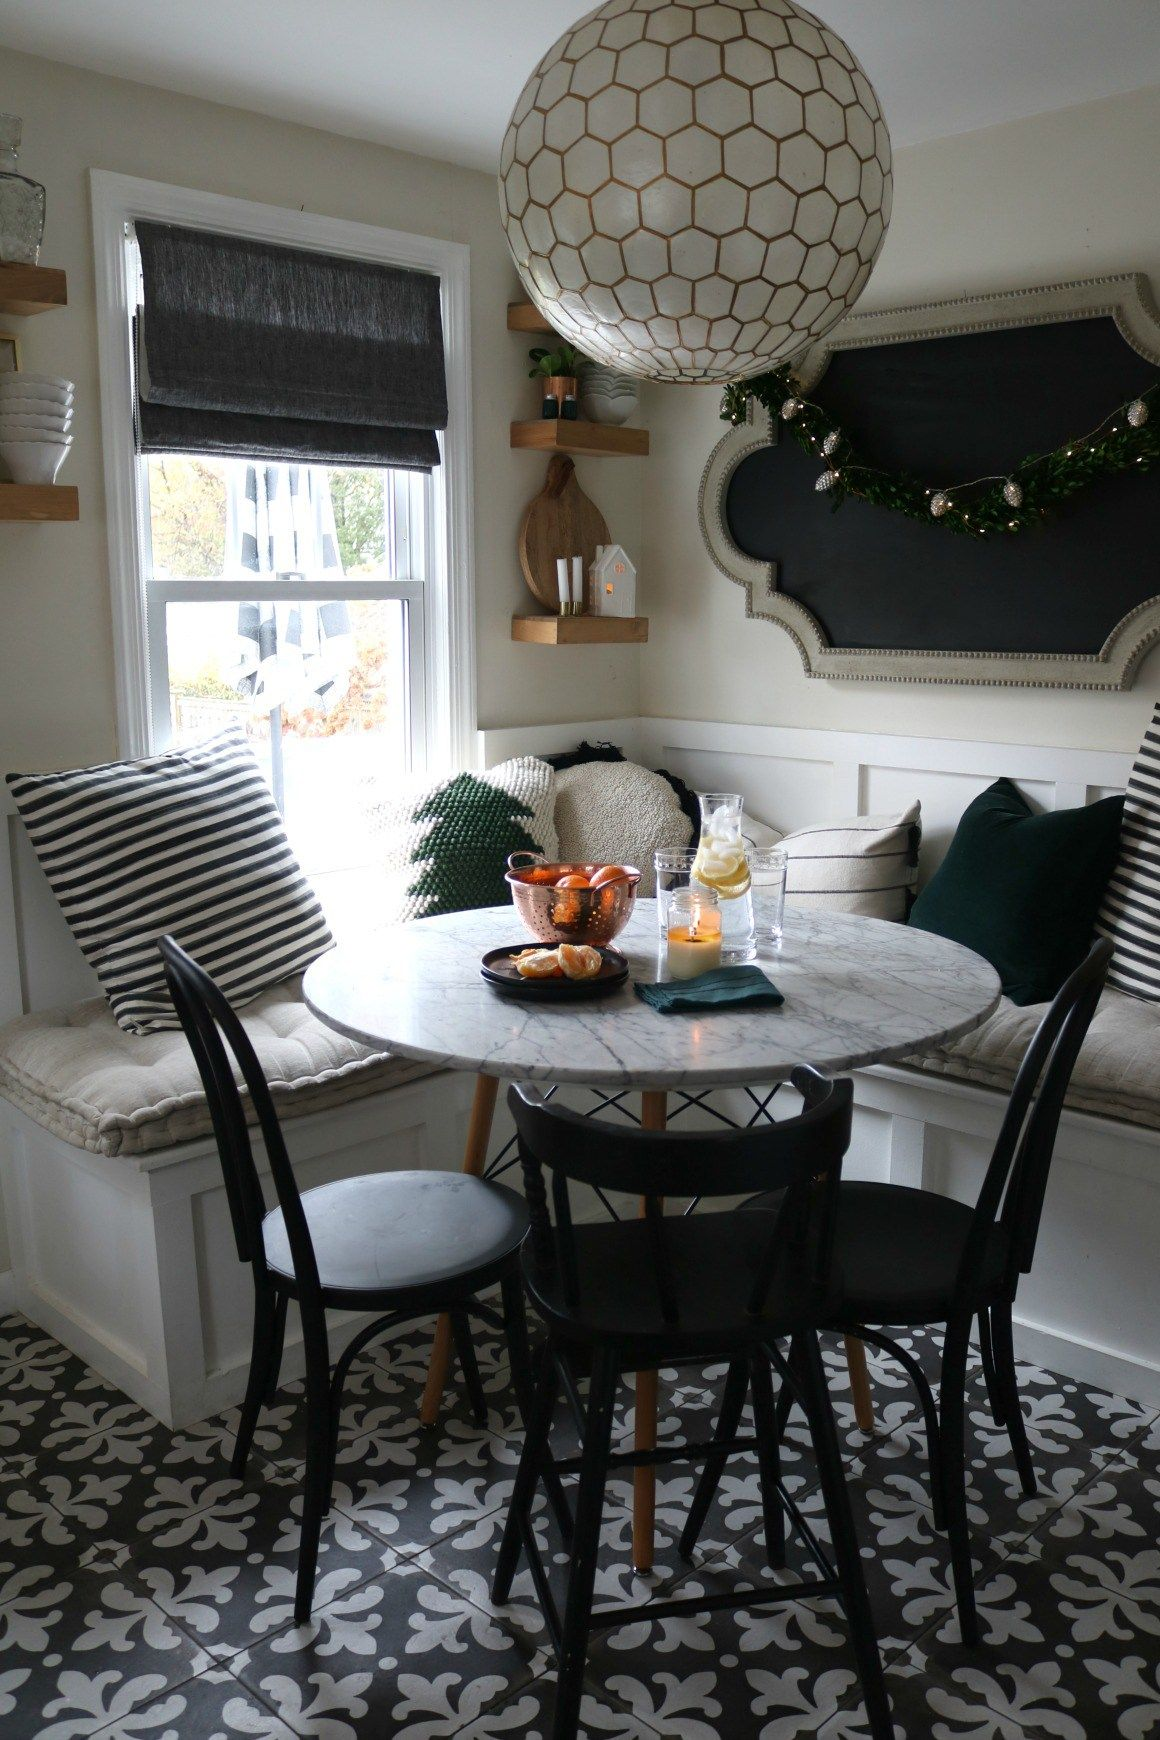 5 Ways to Create a Cozy Kitchen at Christmas